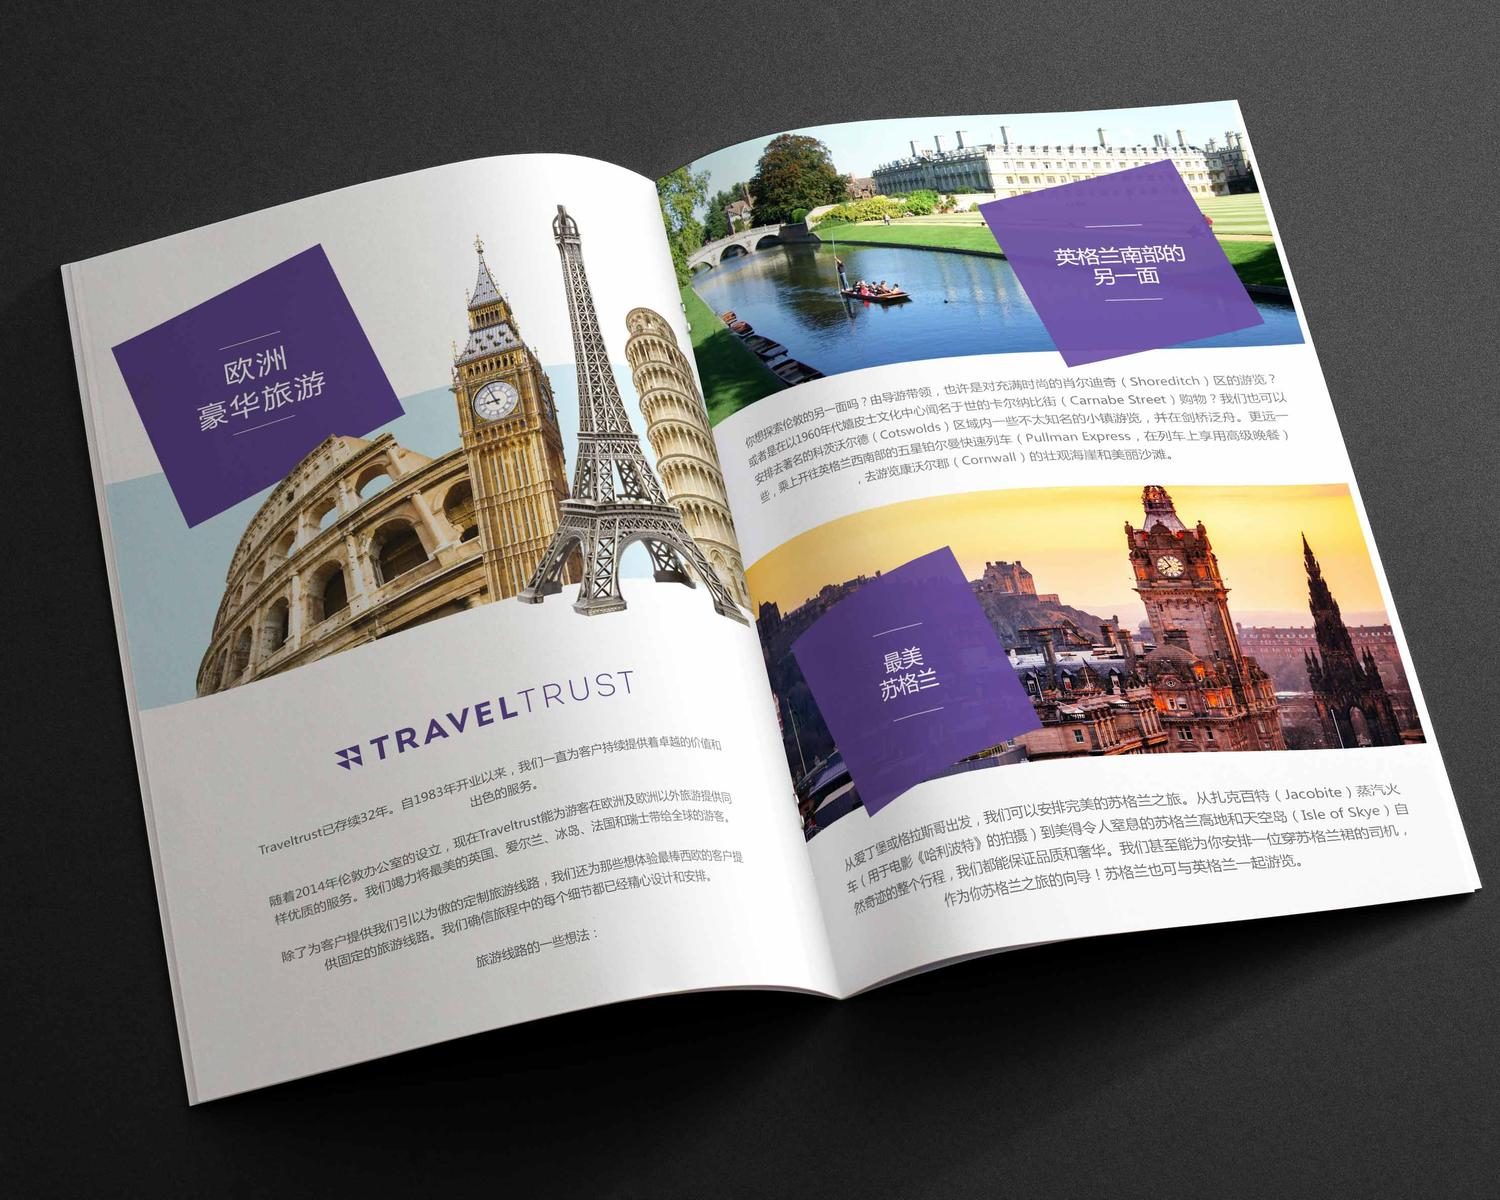 Professional Company Brochure Design - Satisfaction Guarantee by Devrajsinh - 96422